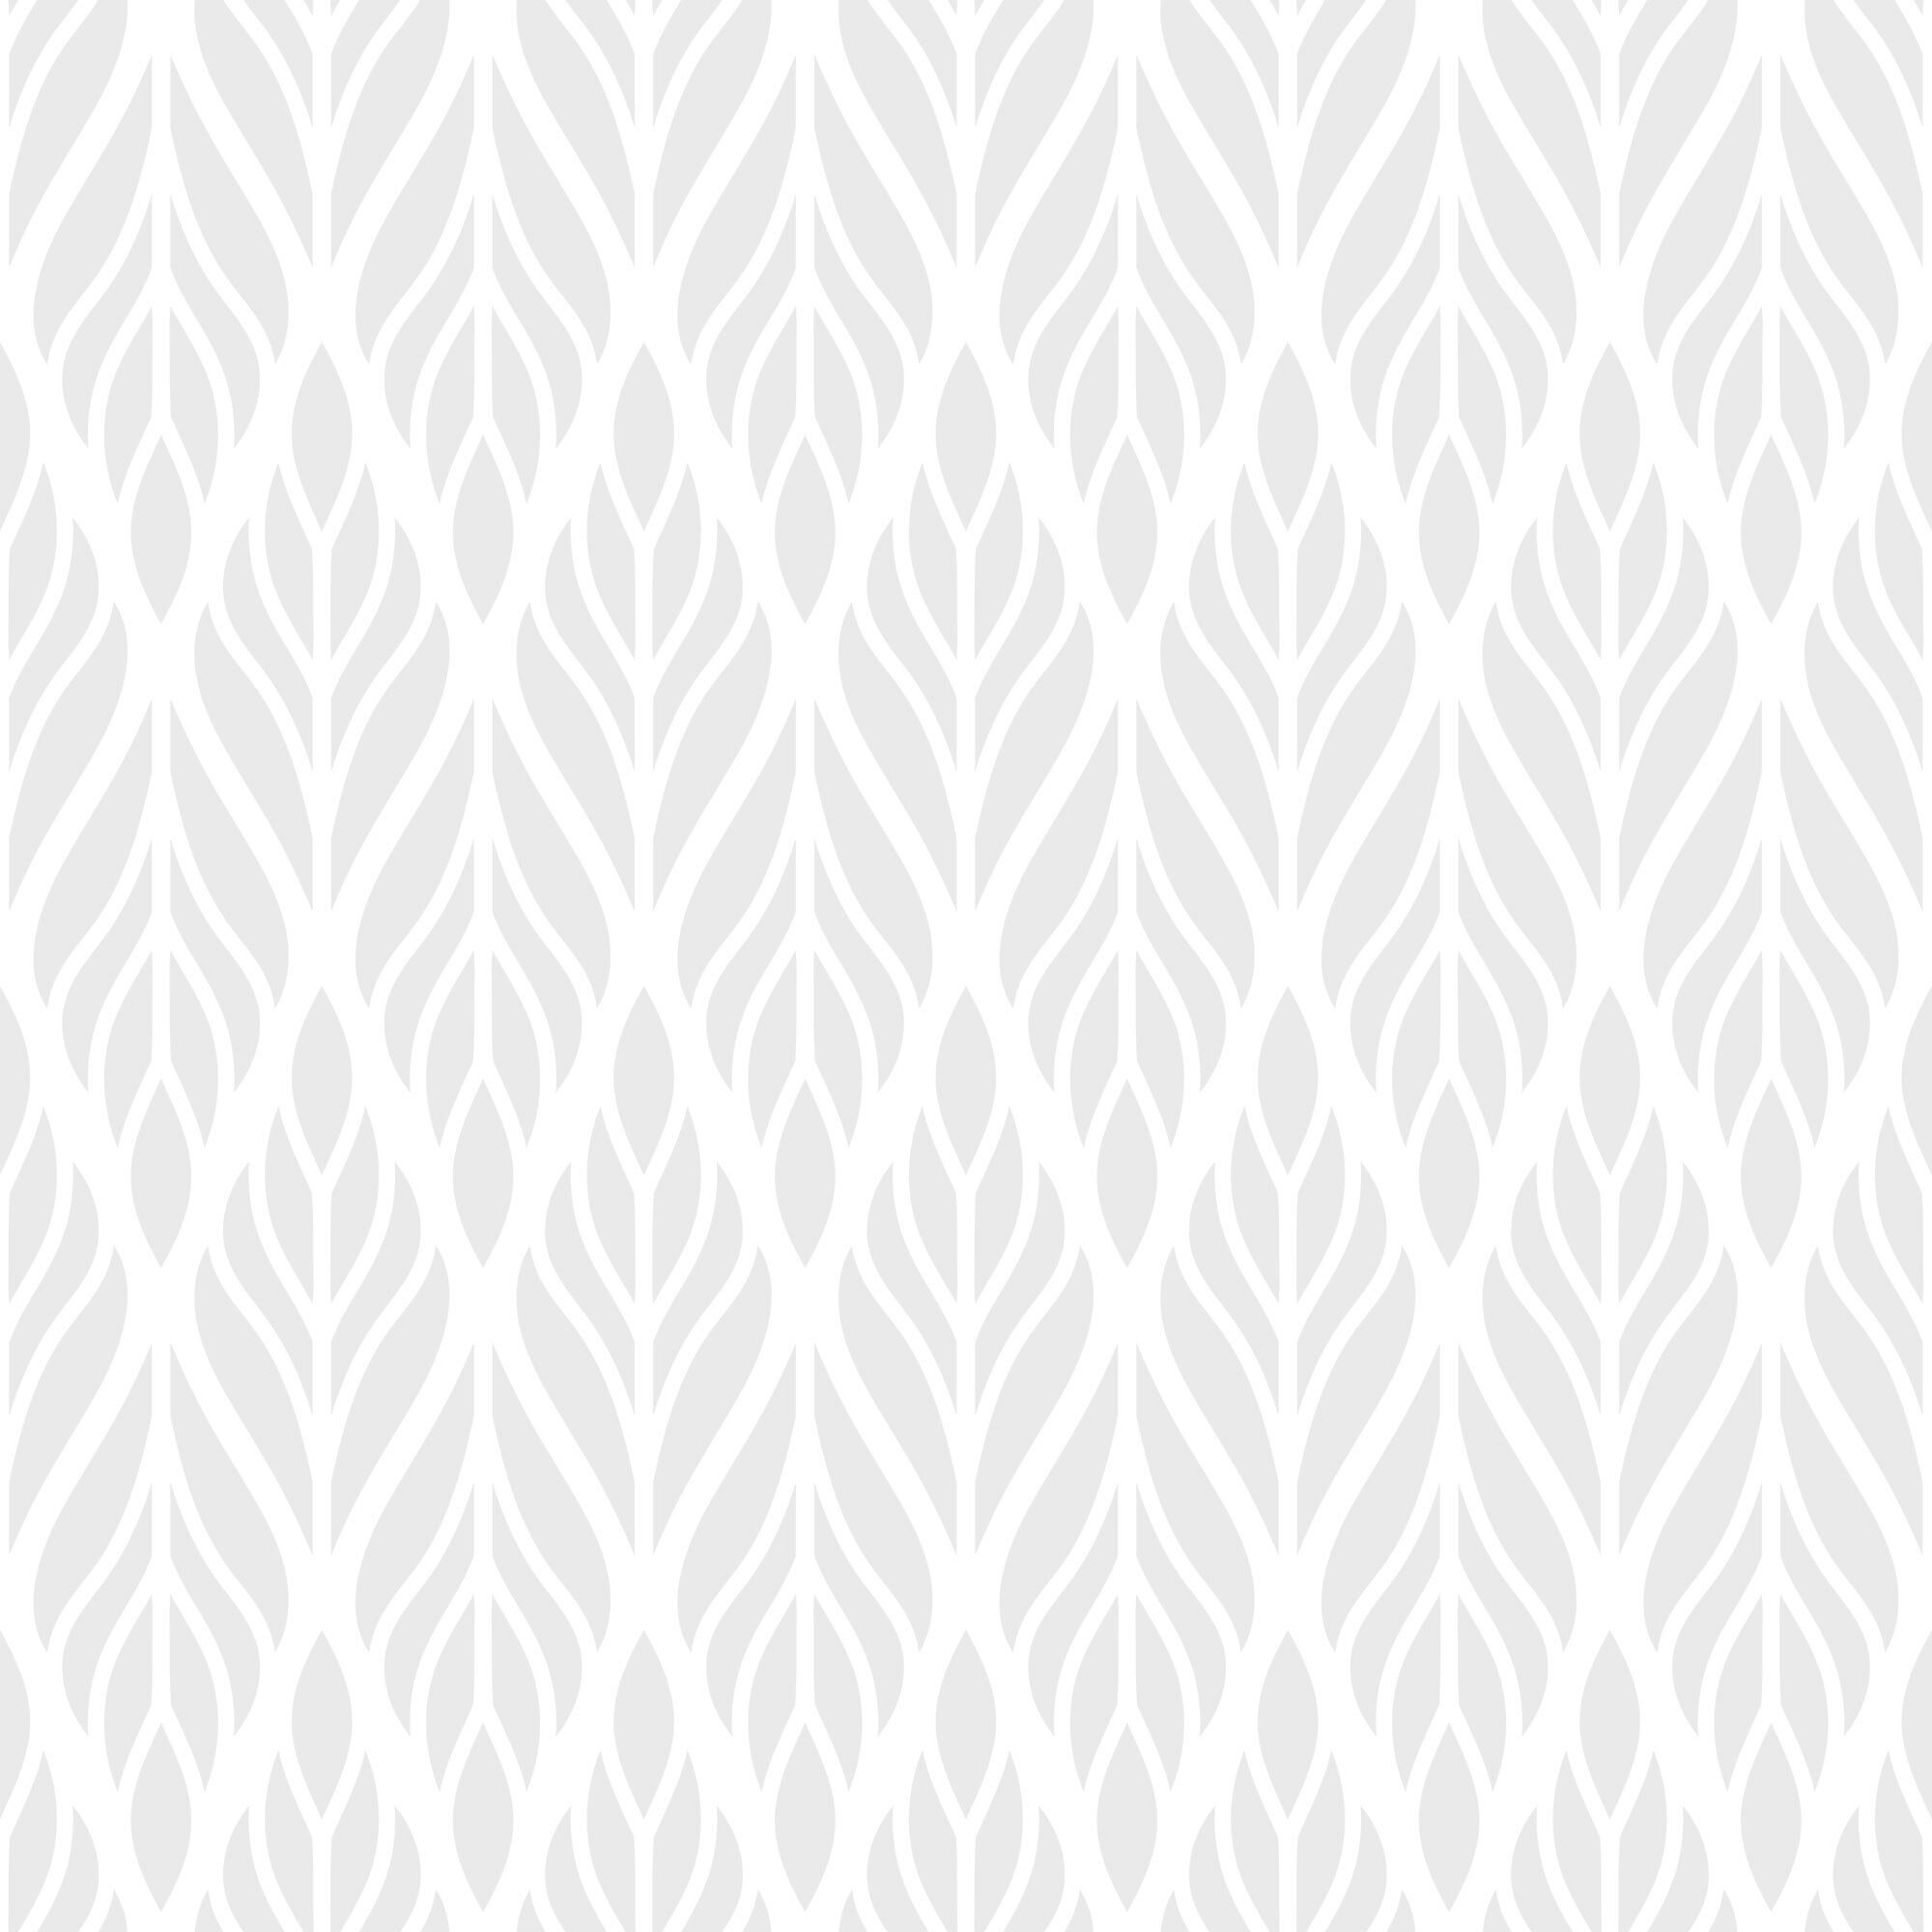 Campagna Paintable Peel And Stick Wallpaper Panel Reviews Joss Main